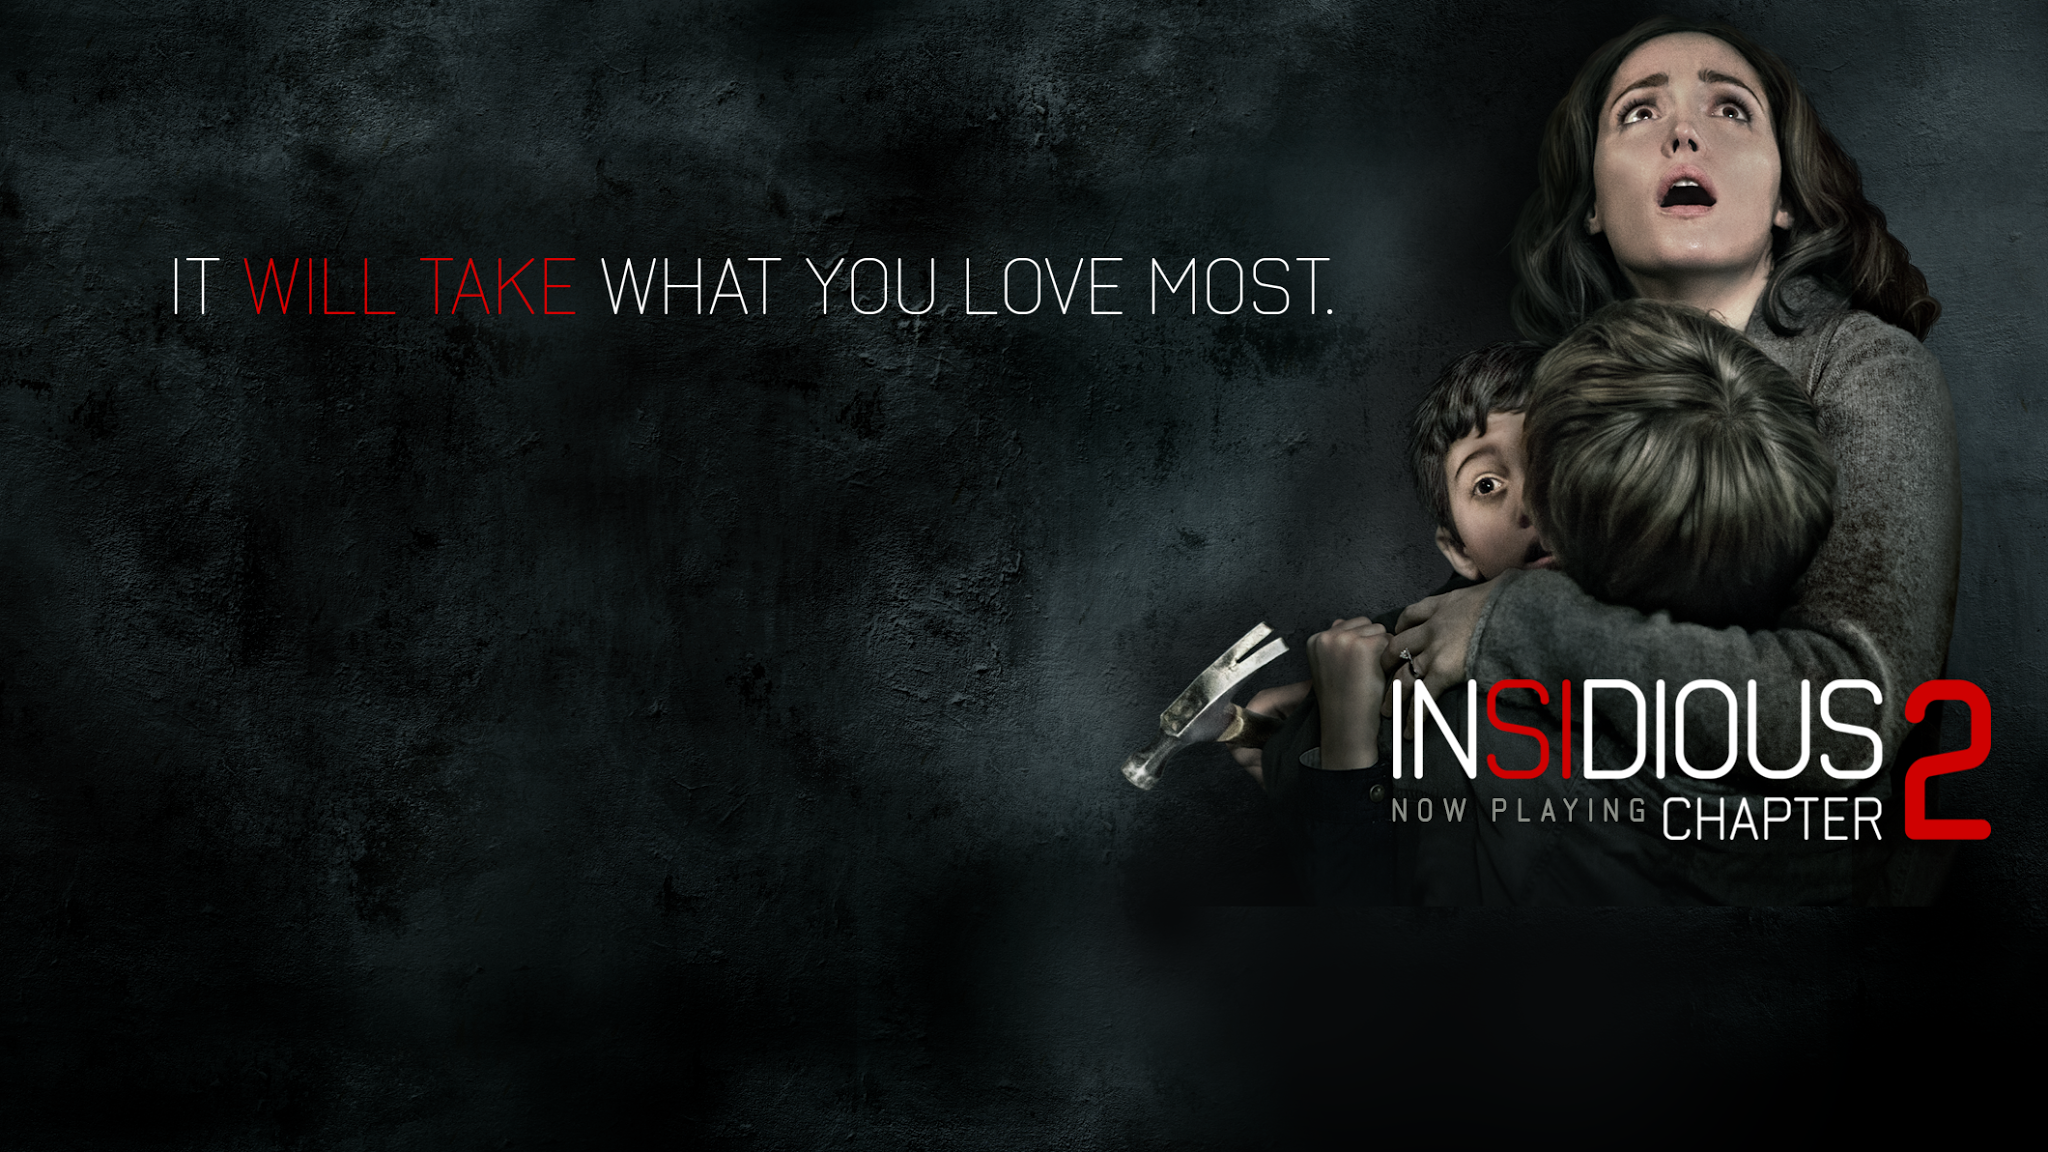 Insidious-Chapter-2-Movie-Poster